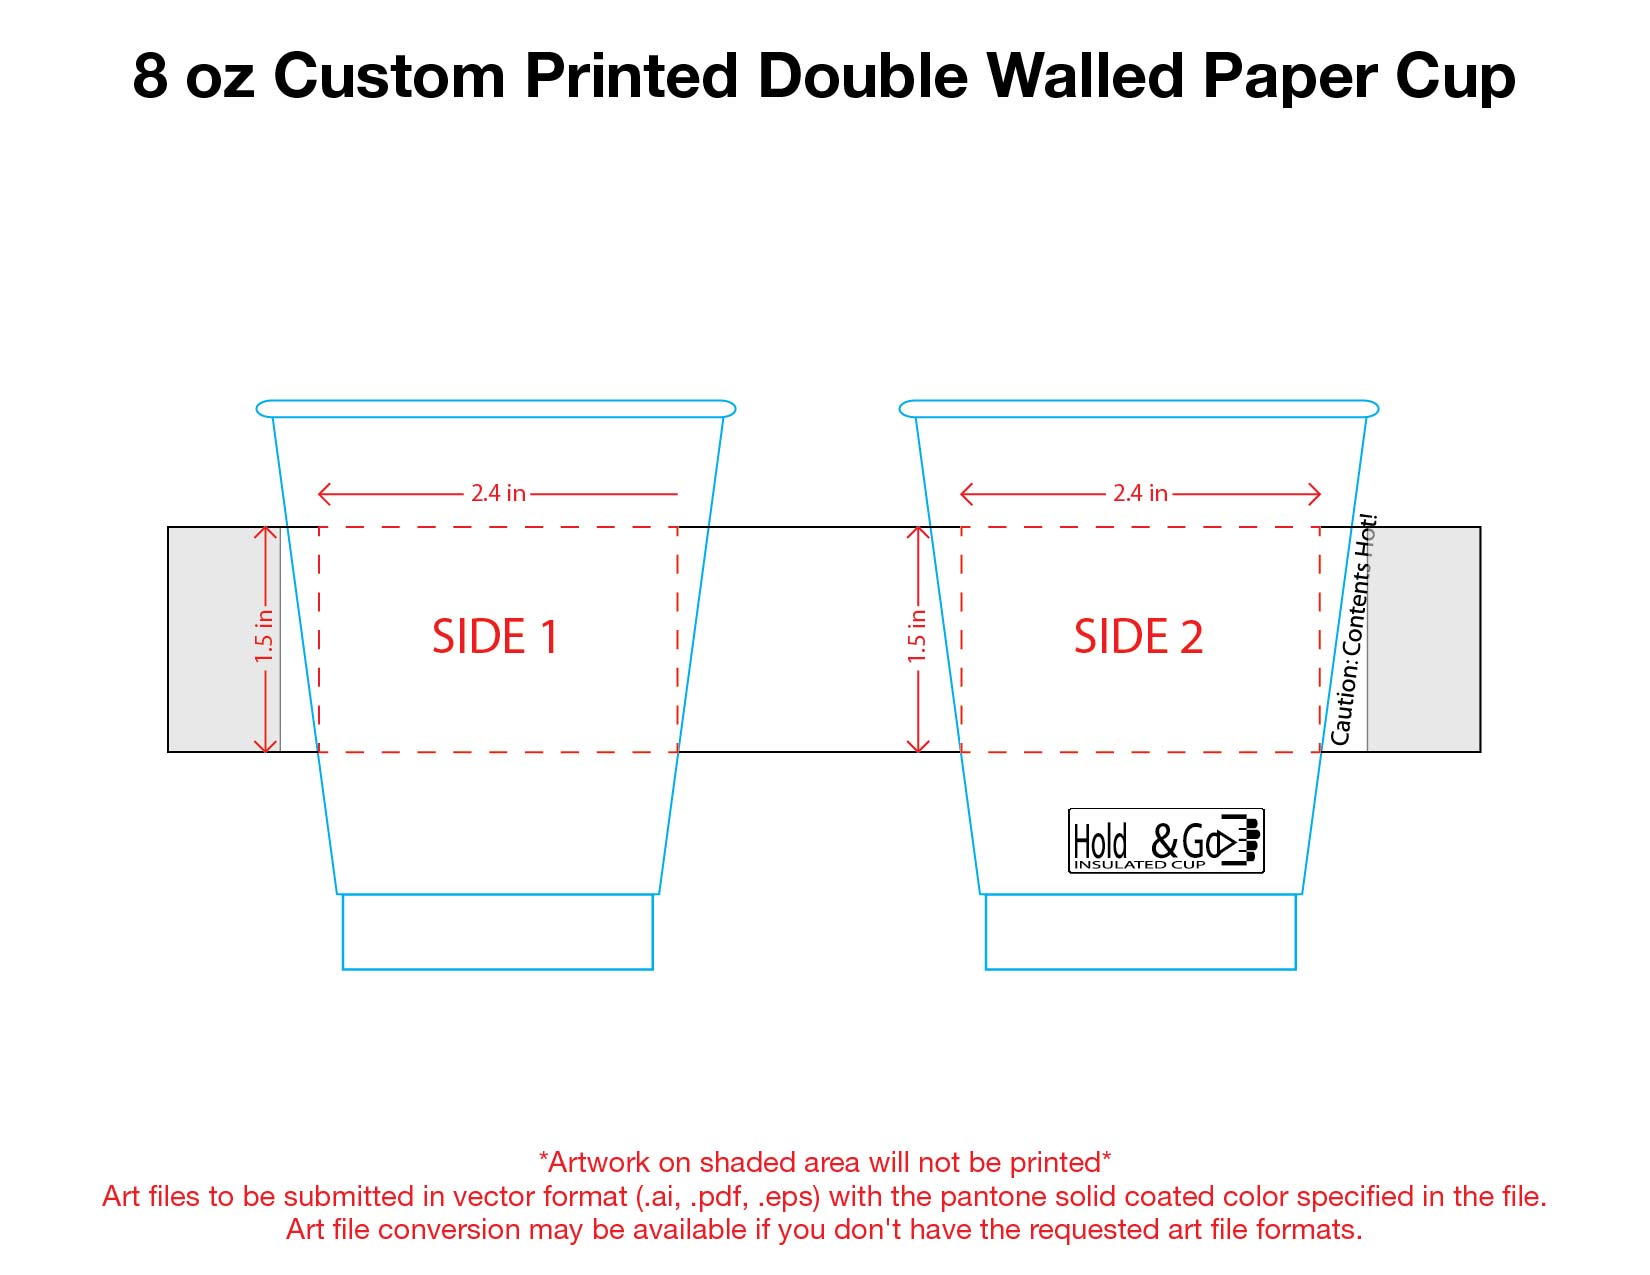 8 oz. Custom Printed Recyclable Double Walled Paper